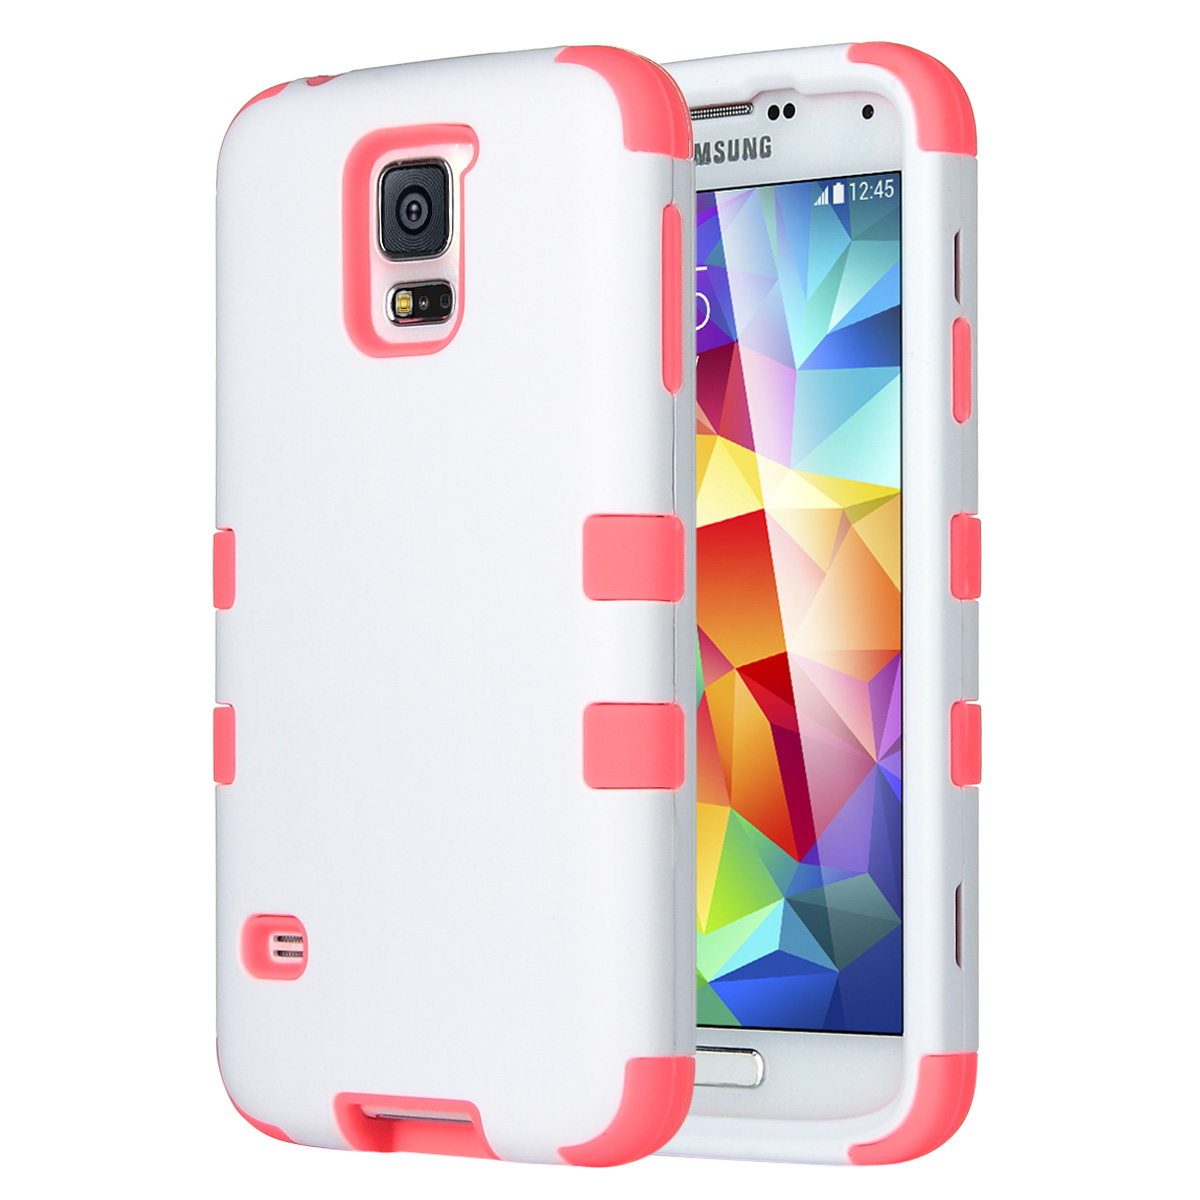 Galaxy S5 Case, ULAK 3-piece Shock Absorbing Dual Layer Protective Case with Soft silicone Skin Hard PC Grip Cover for Samsung Galaxy S5  (2014)